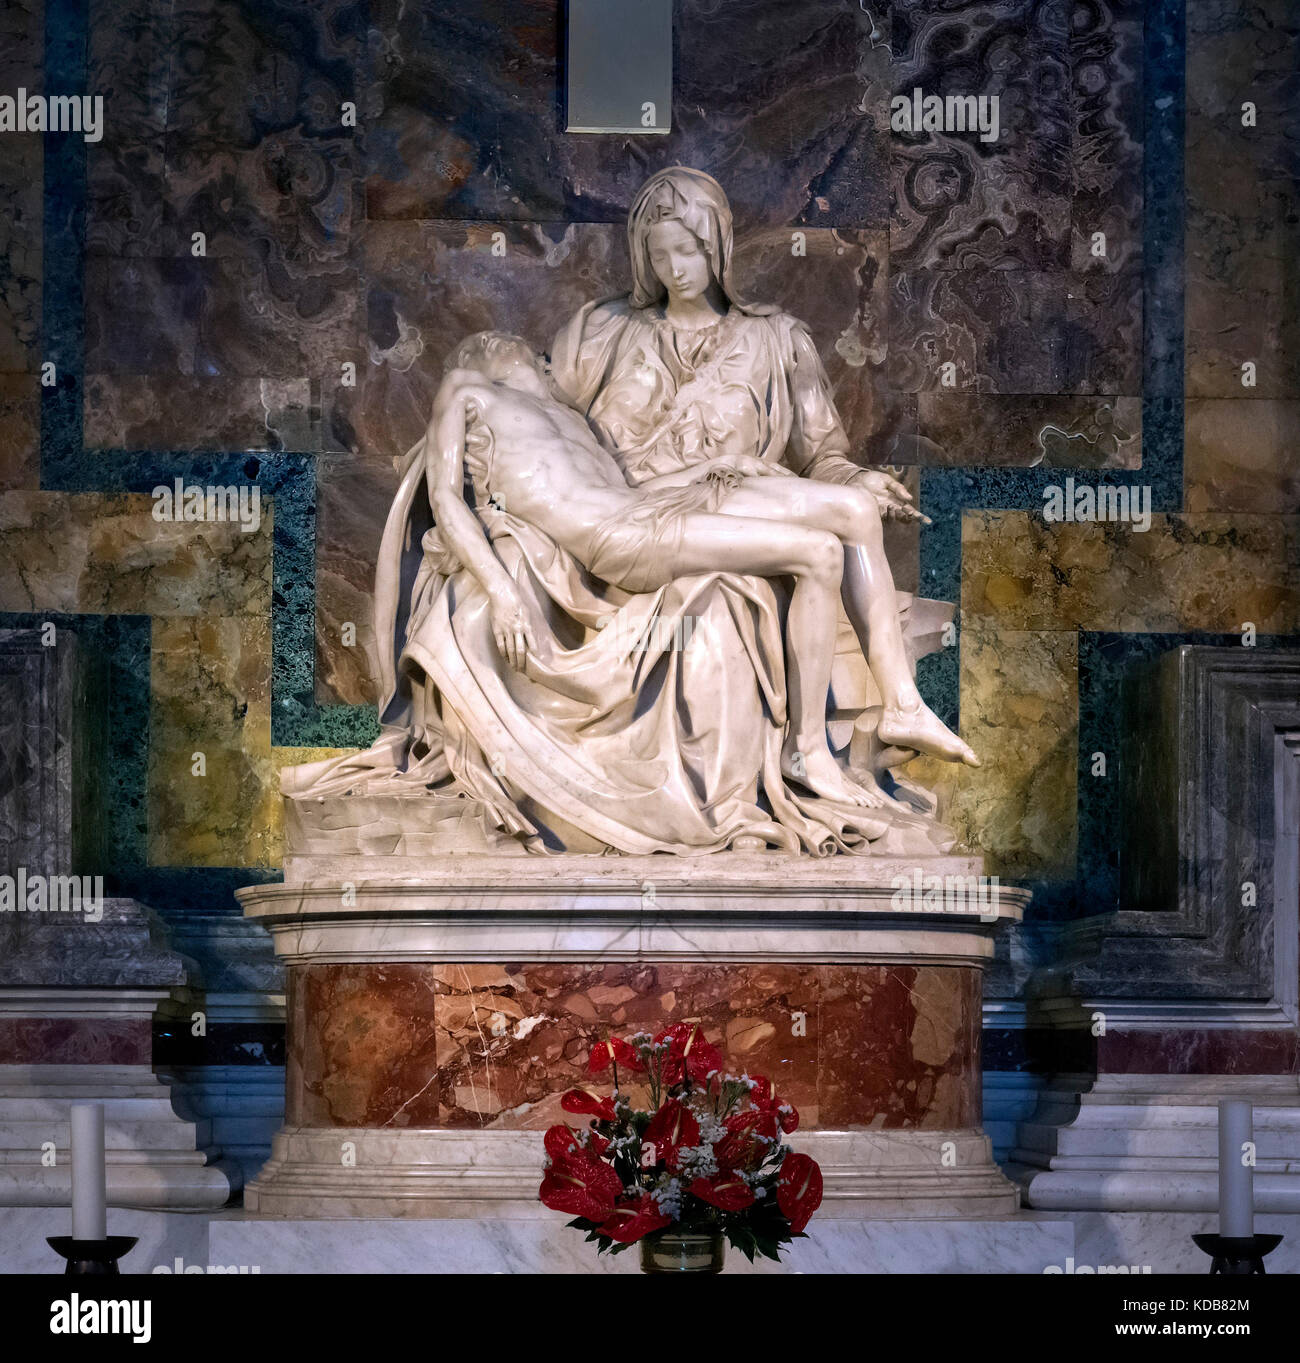 The Pieta by Michelangelo, St Peter's Basilica, Vatican City, Rome, Italy. - Stock Image